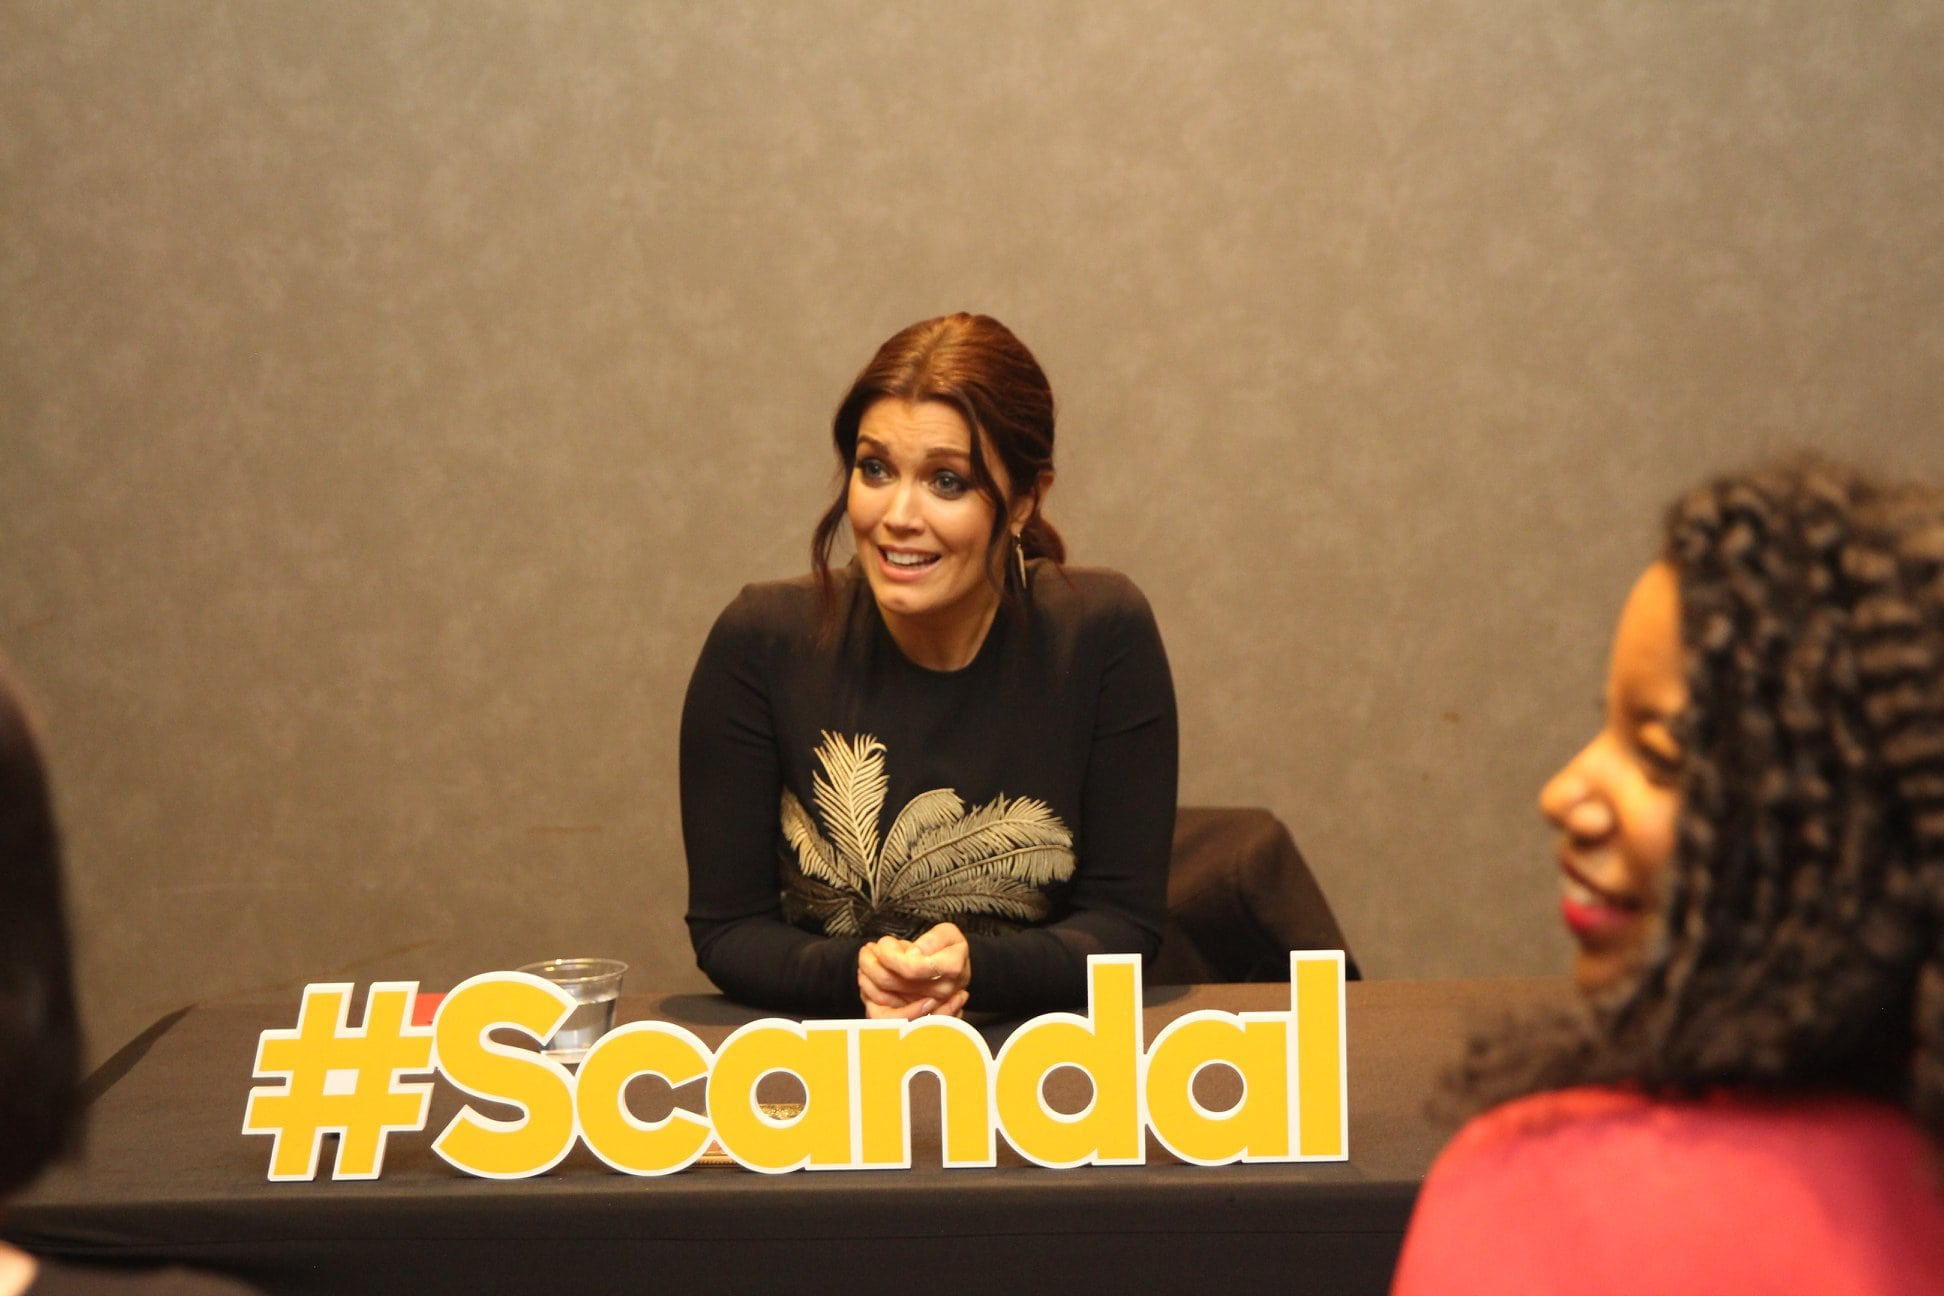 Bellamy Young Interview - A Wrinkle In Time and Scandal Crossover